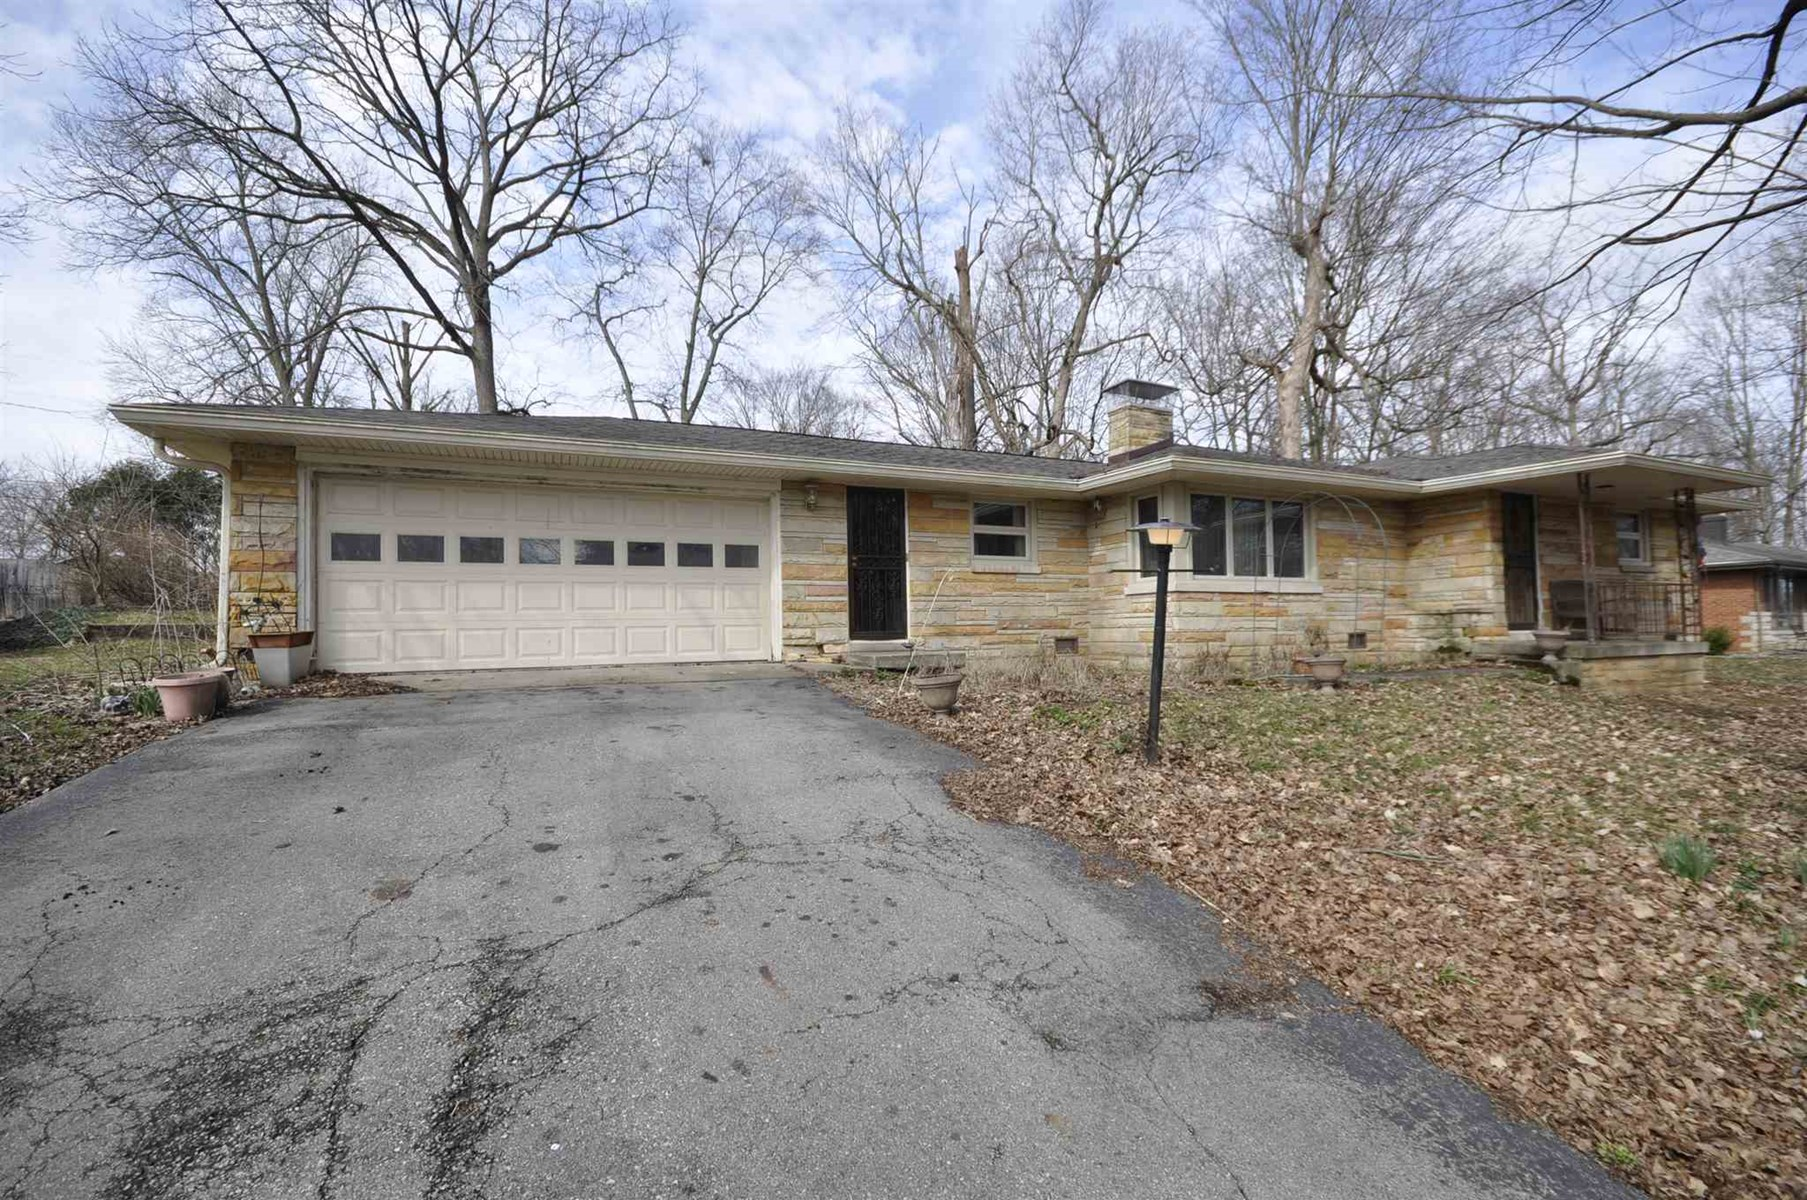 Home for Sale Anderson, Indiana